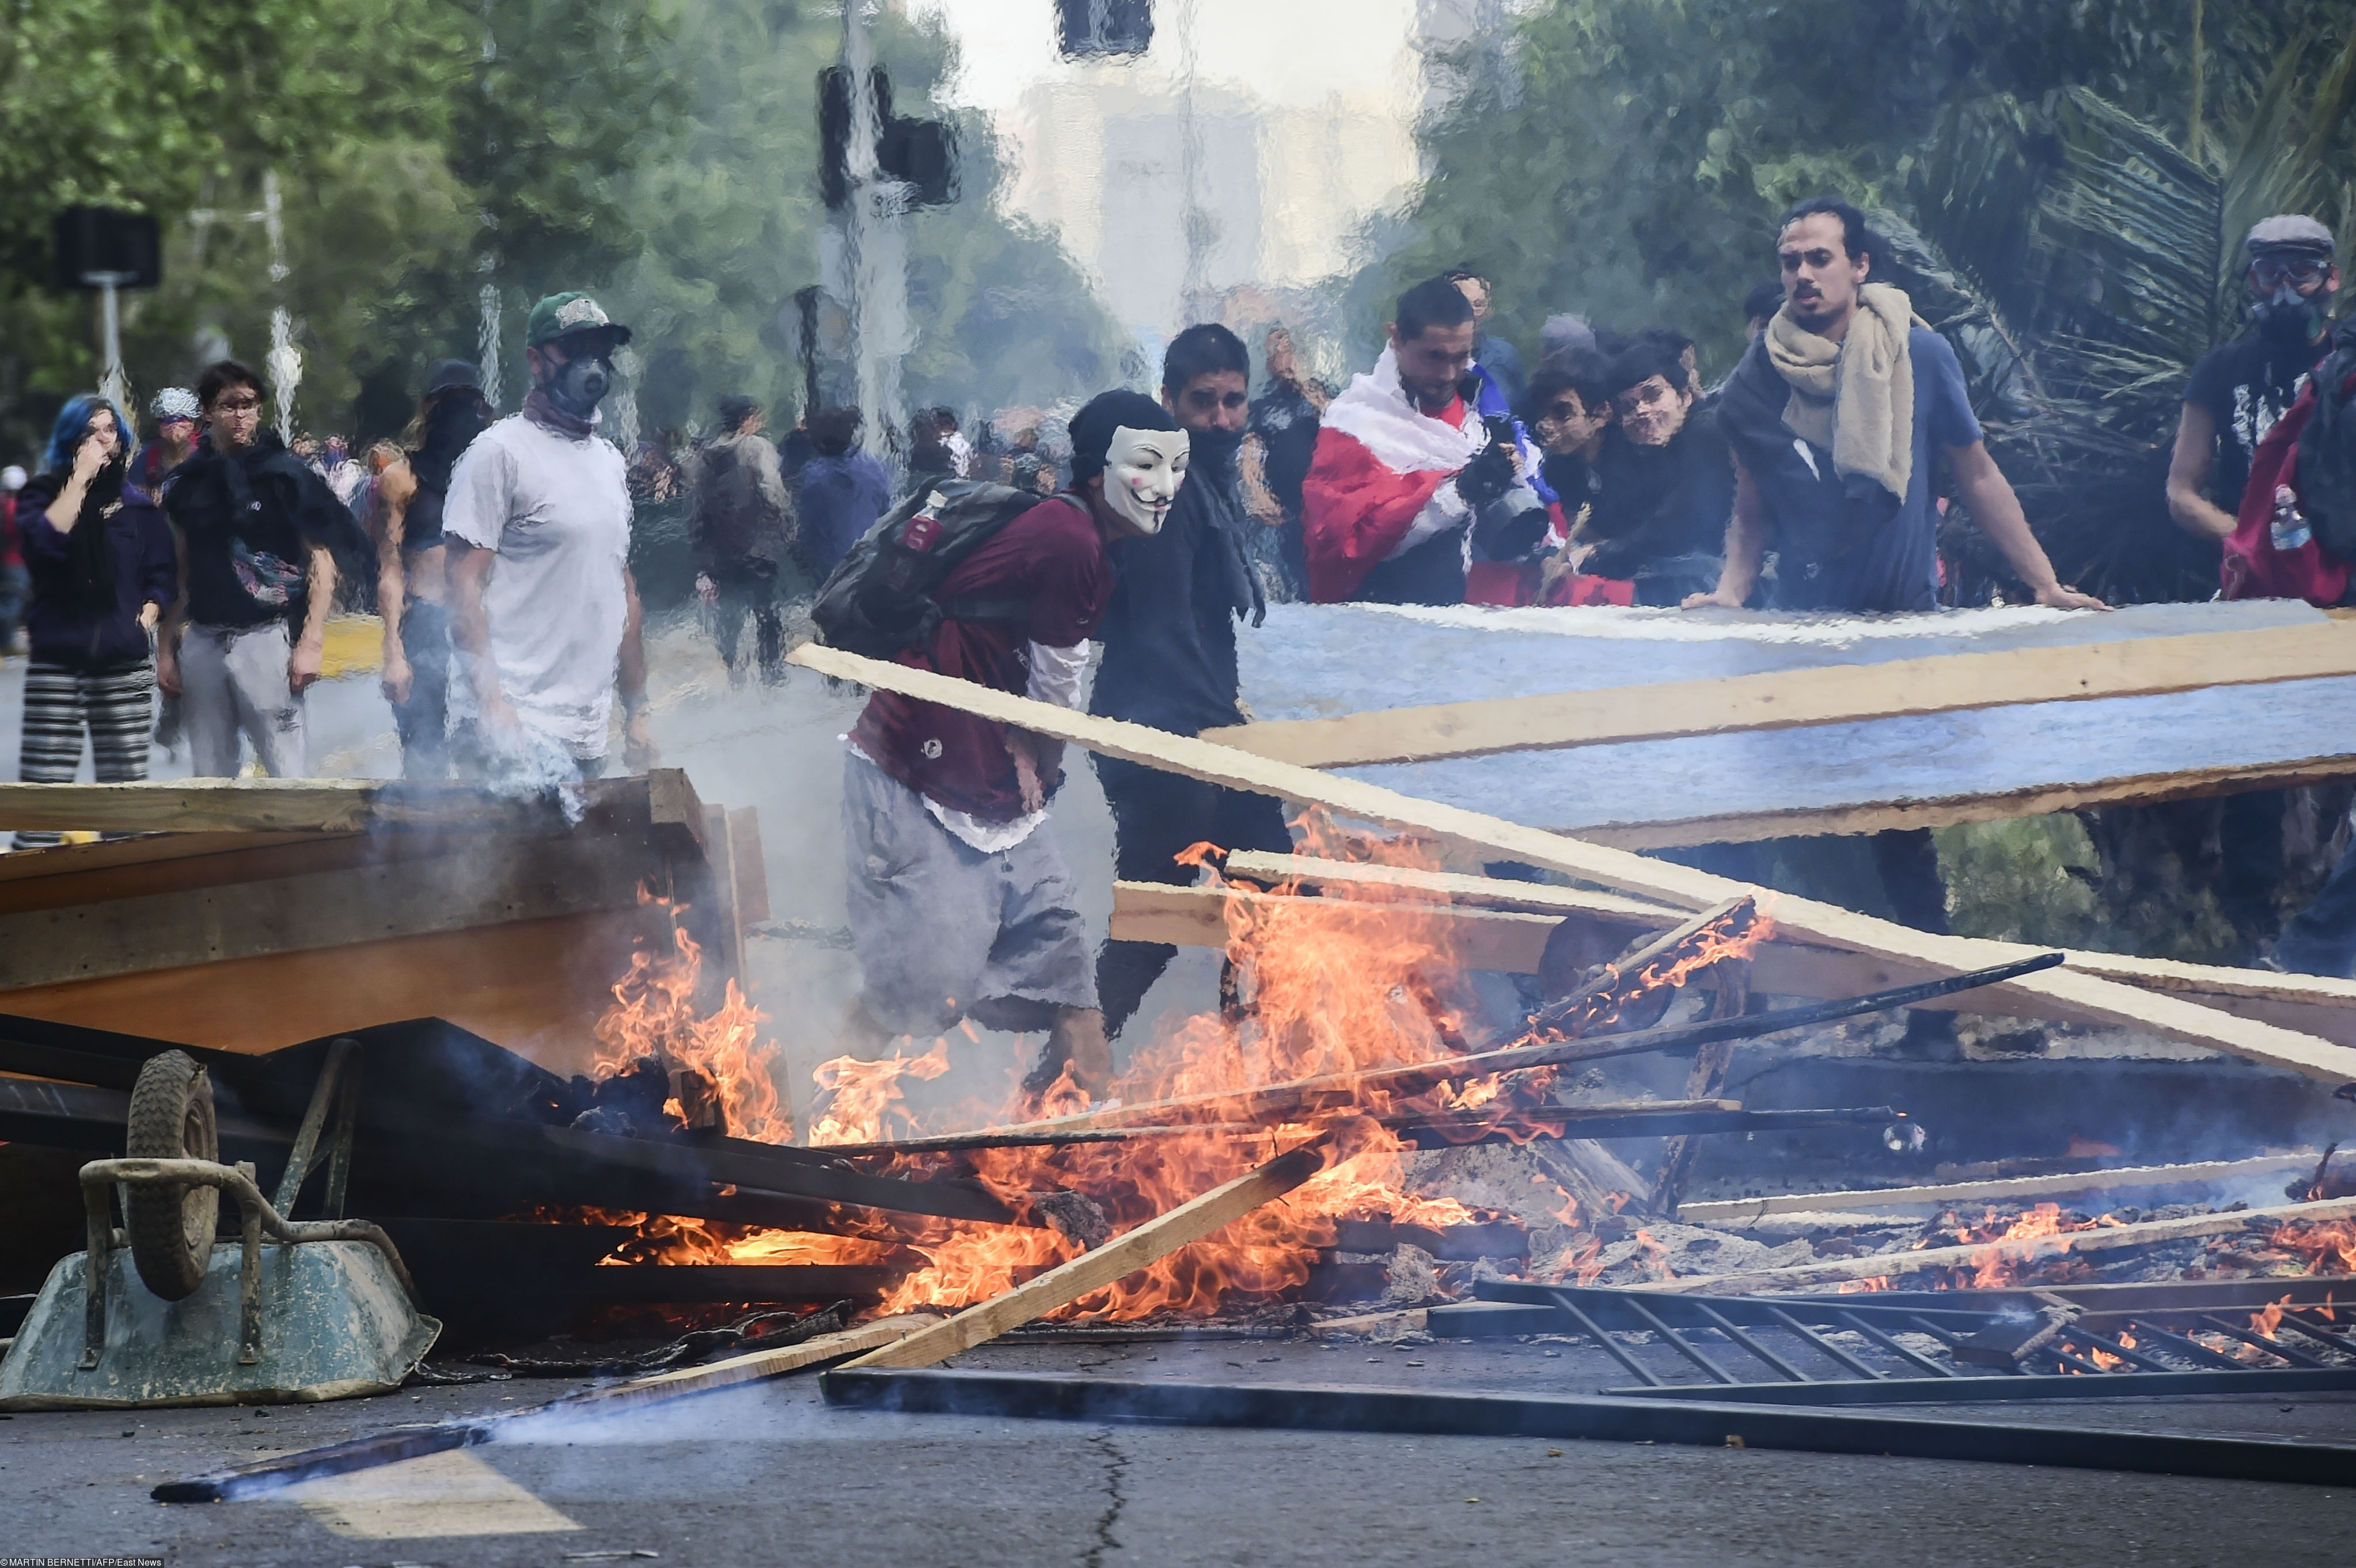 Demonstrators set up barricades during clashes between protesters and the riot police in Santiago, on October 19, 2019. - Chile's president declared a state of emergency in Santiago Friday night and gave the military responsibility for security after a day of violent protests over an increase in the price of metro tickets. (Photo by Martin BERNETTI / AFP)